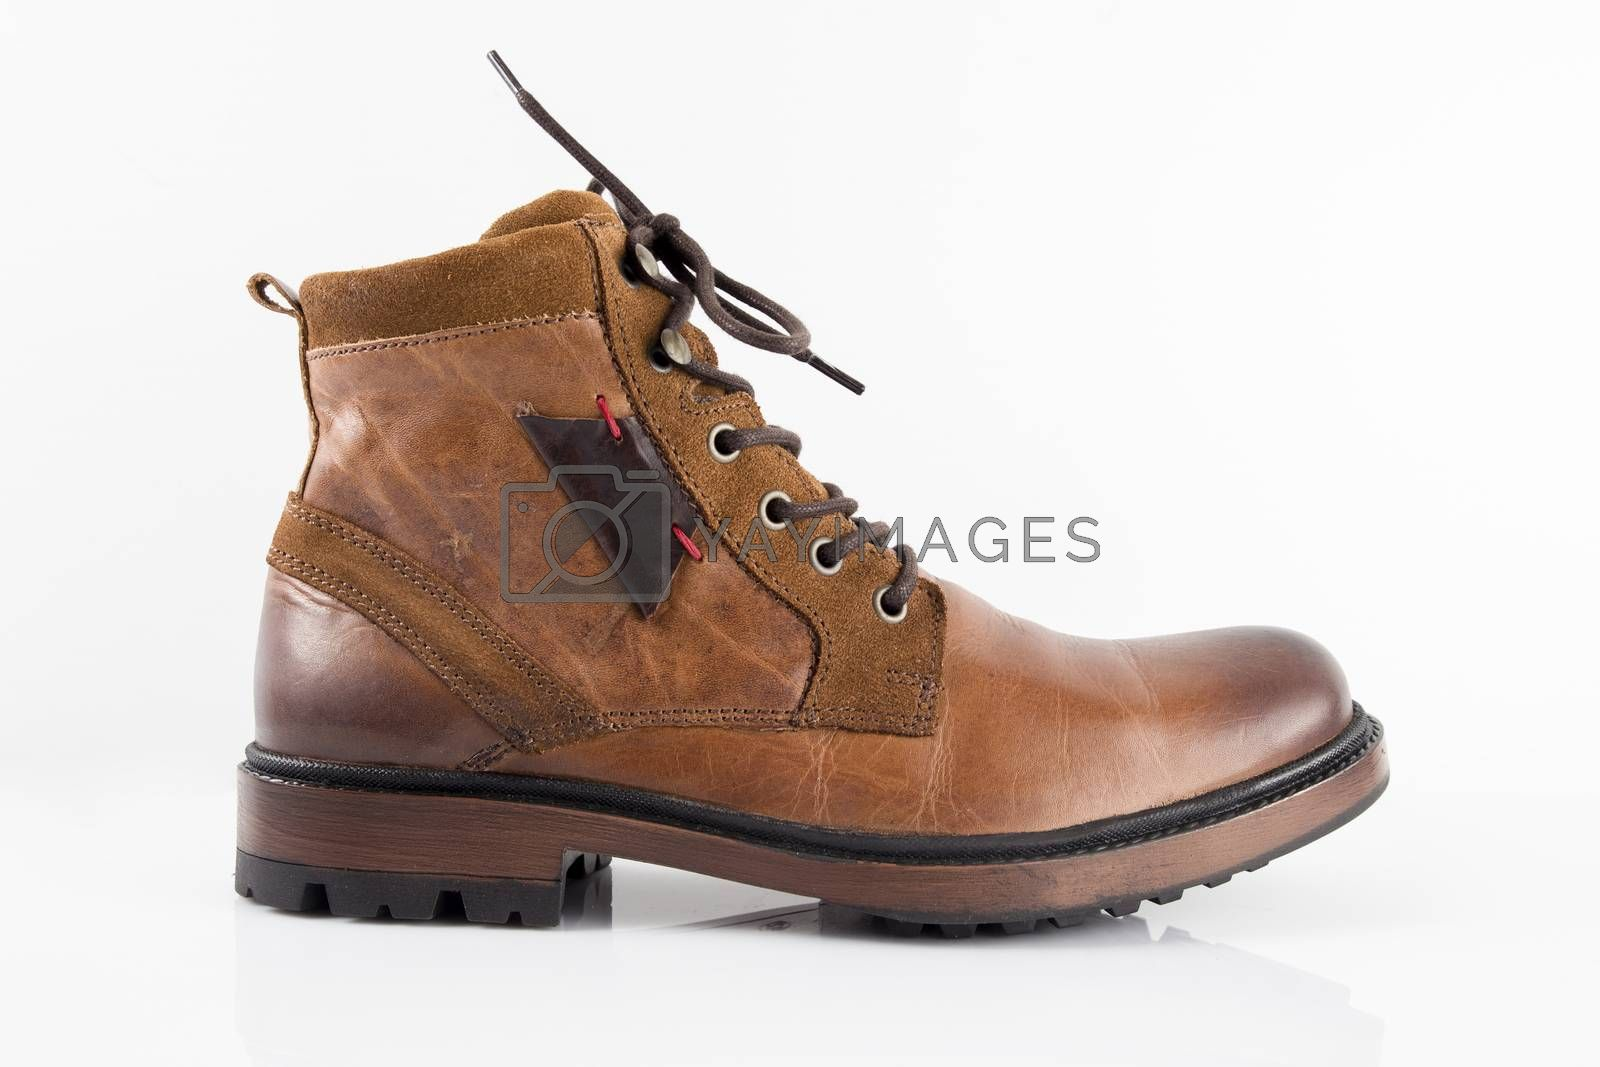 Brown leather boots on white background, isolated product, top view.